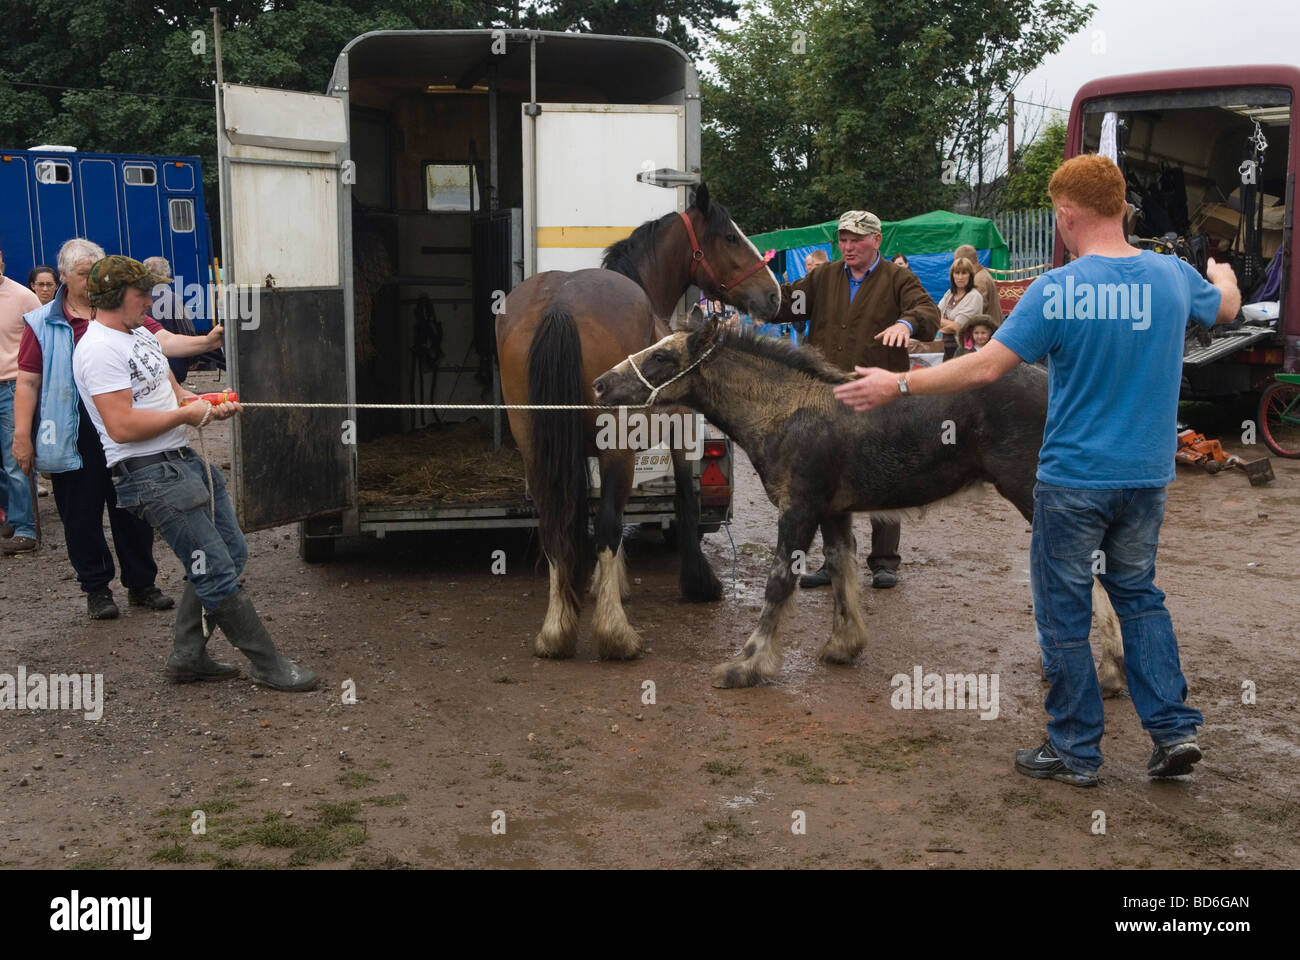 273784a5d5262 Brigg Horse Fair Stock Photos   Brigg Horse Fair Stock Images - Alamy